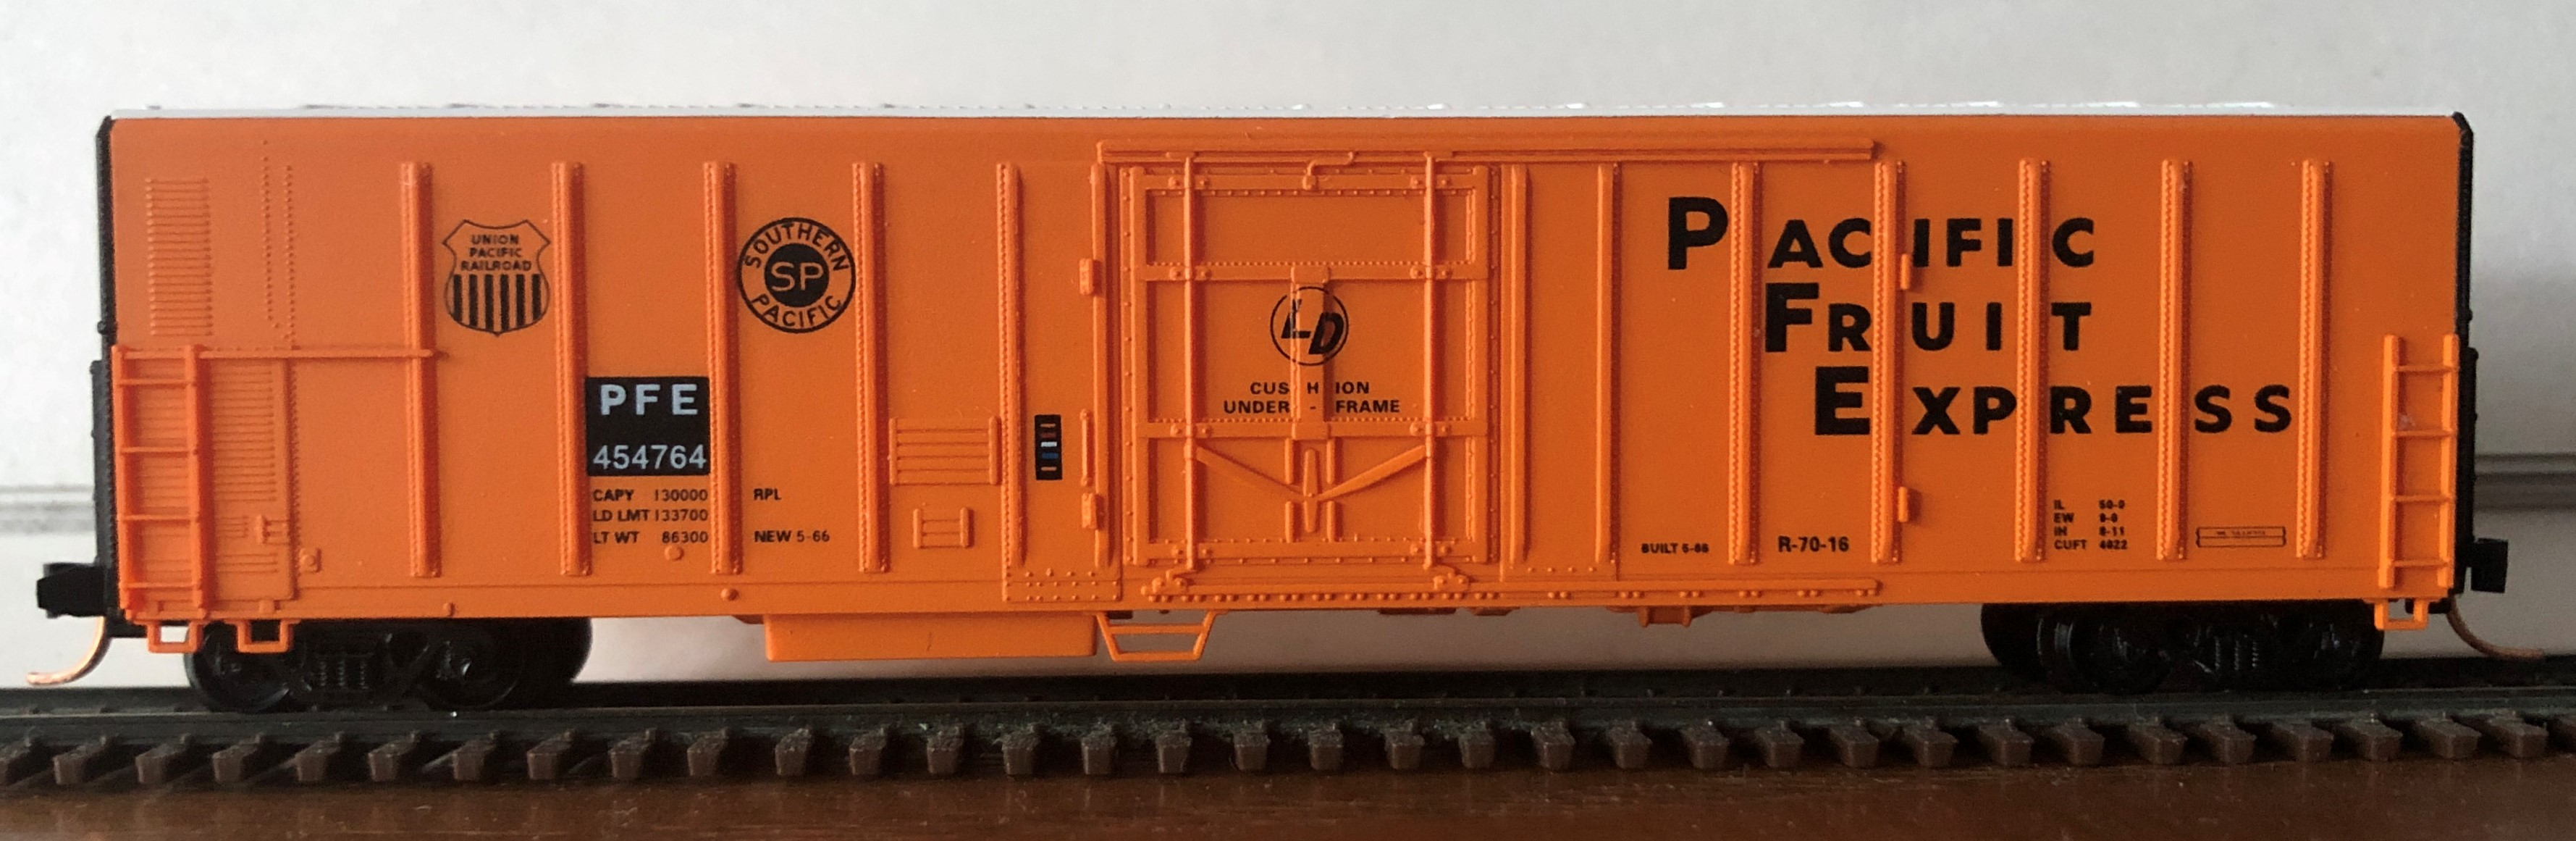 N Scale - Red Caboose - RM-18651-3 - Reefer, 57 Foot, Mechanical, PC&F R-70-16 - Pacific Fruit Express - 454764